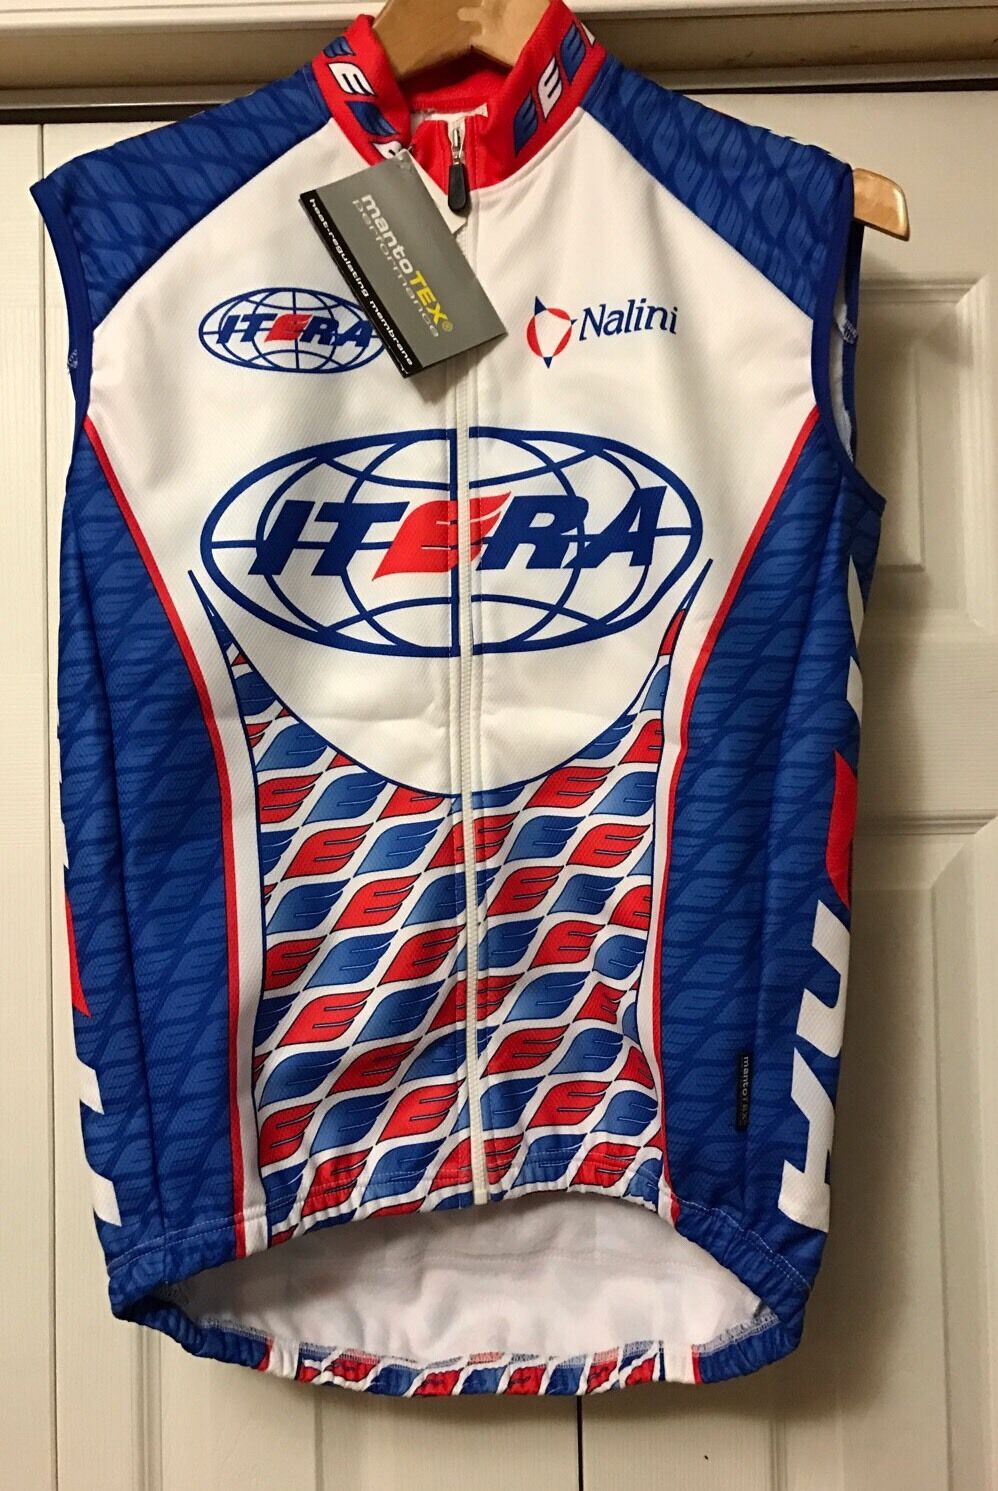 Nalini Itera cycling shirt sleeveless zip size small Manto  Tex NEW   with 60% off discount